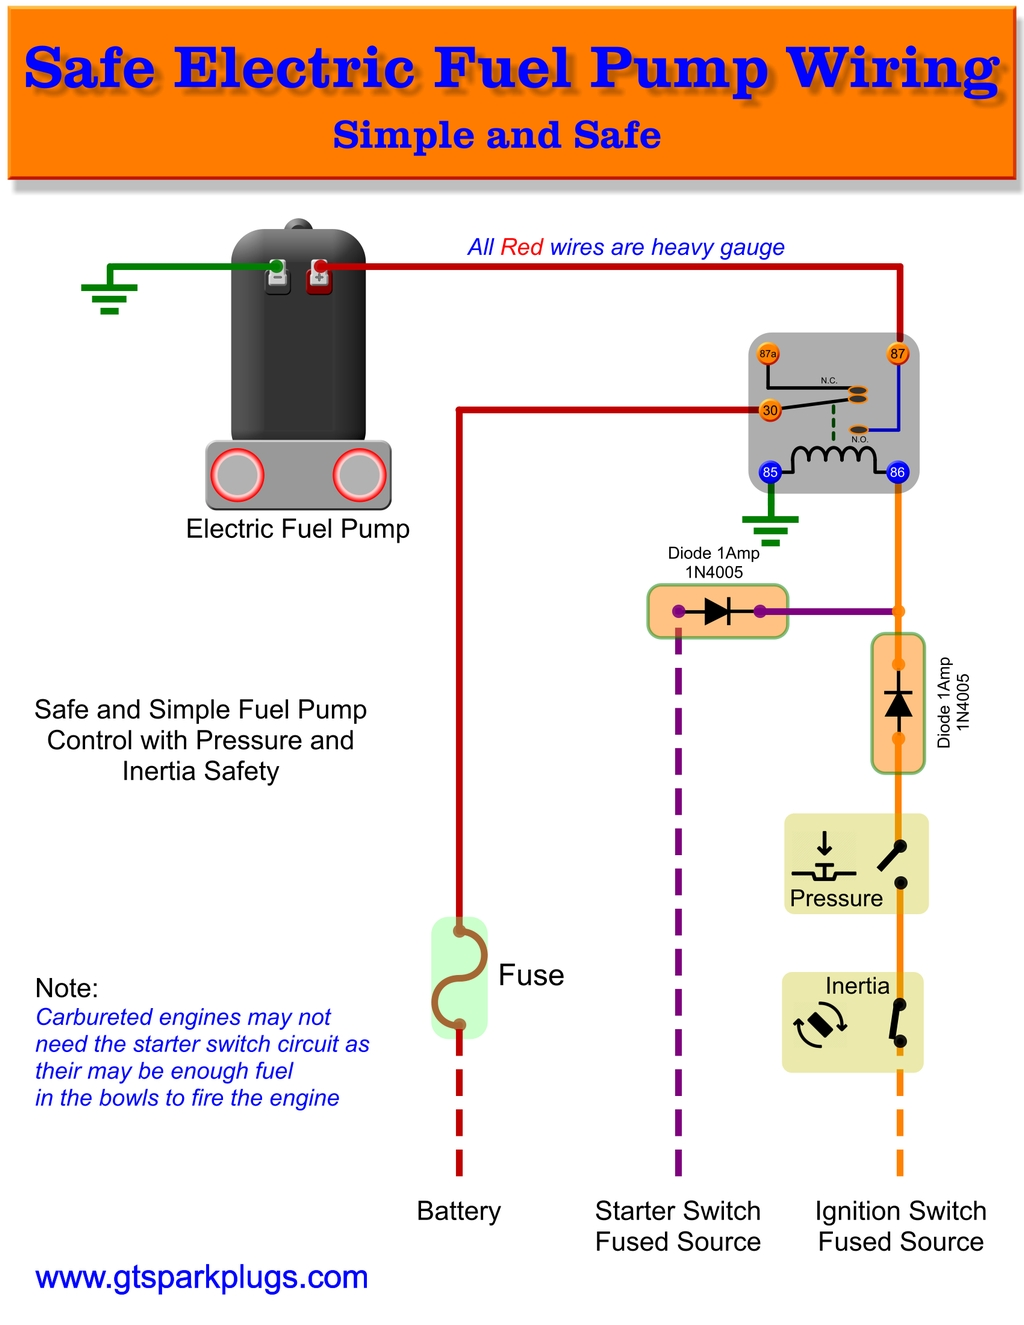 Electric Fuel Pump Wiring Diagram | GTSparkplugs on